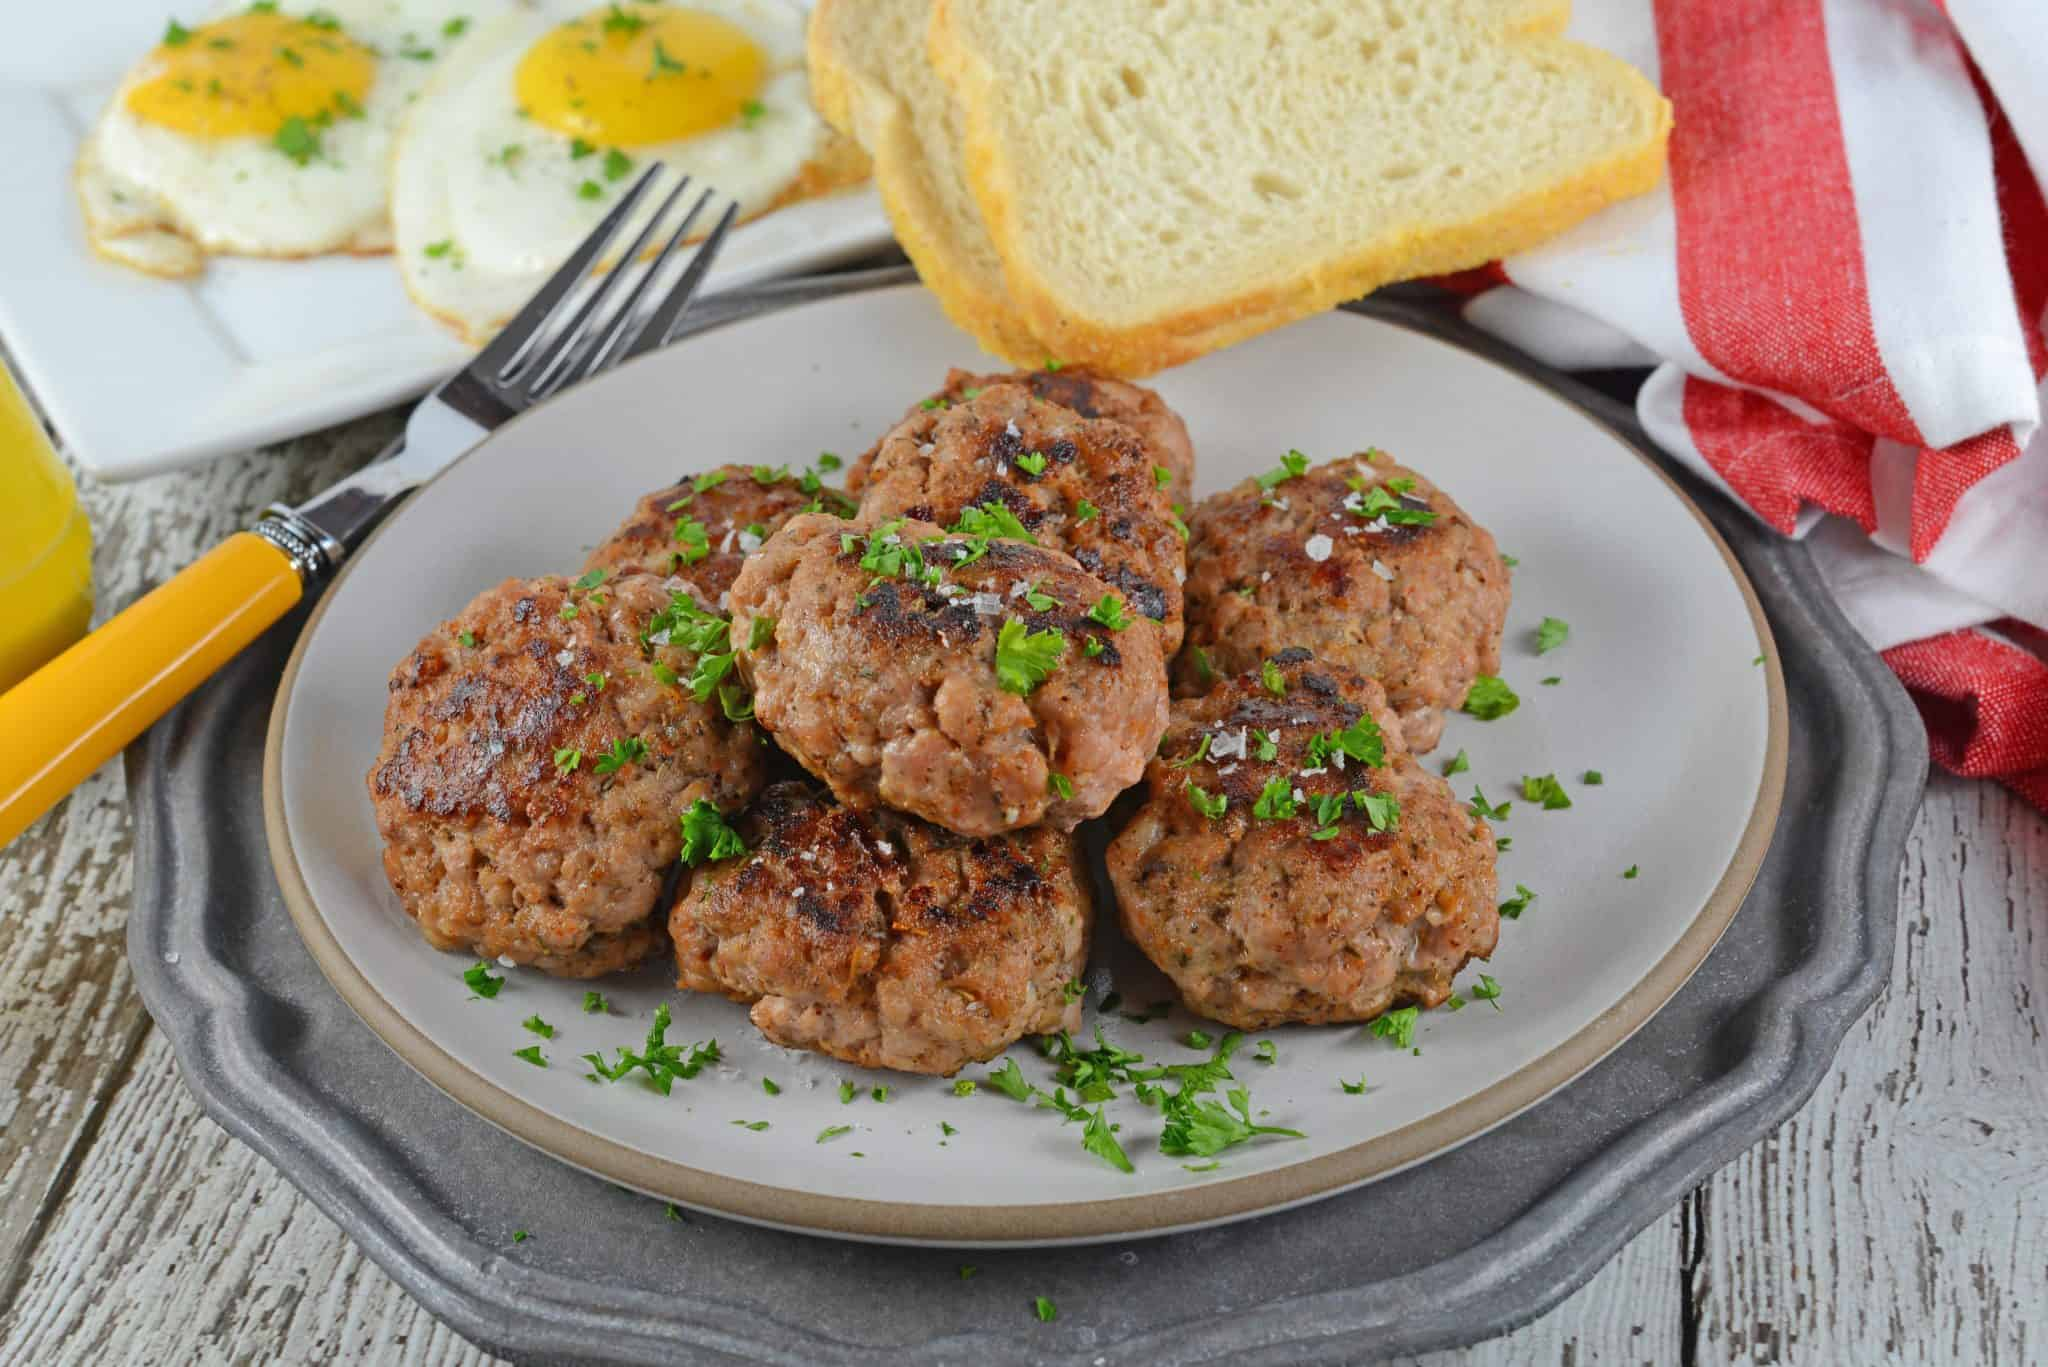 Homemade Breakfast Sausage is easier than you think using my proprietary blend of sausage seasoning and then forming them into sausage patties or sausage balls.